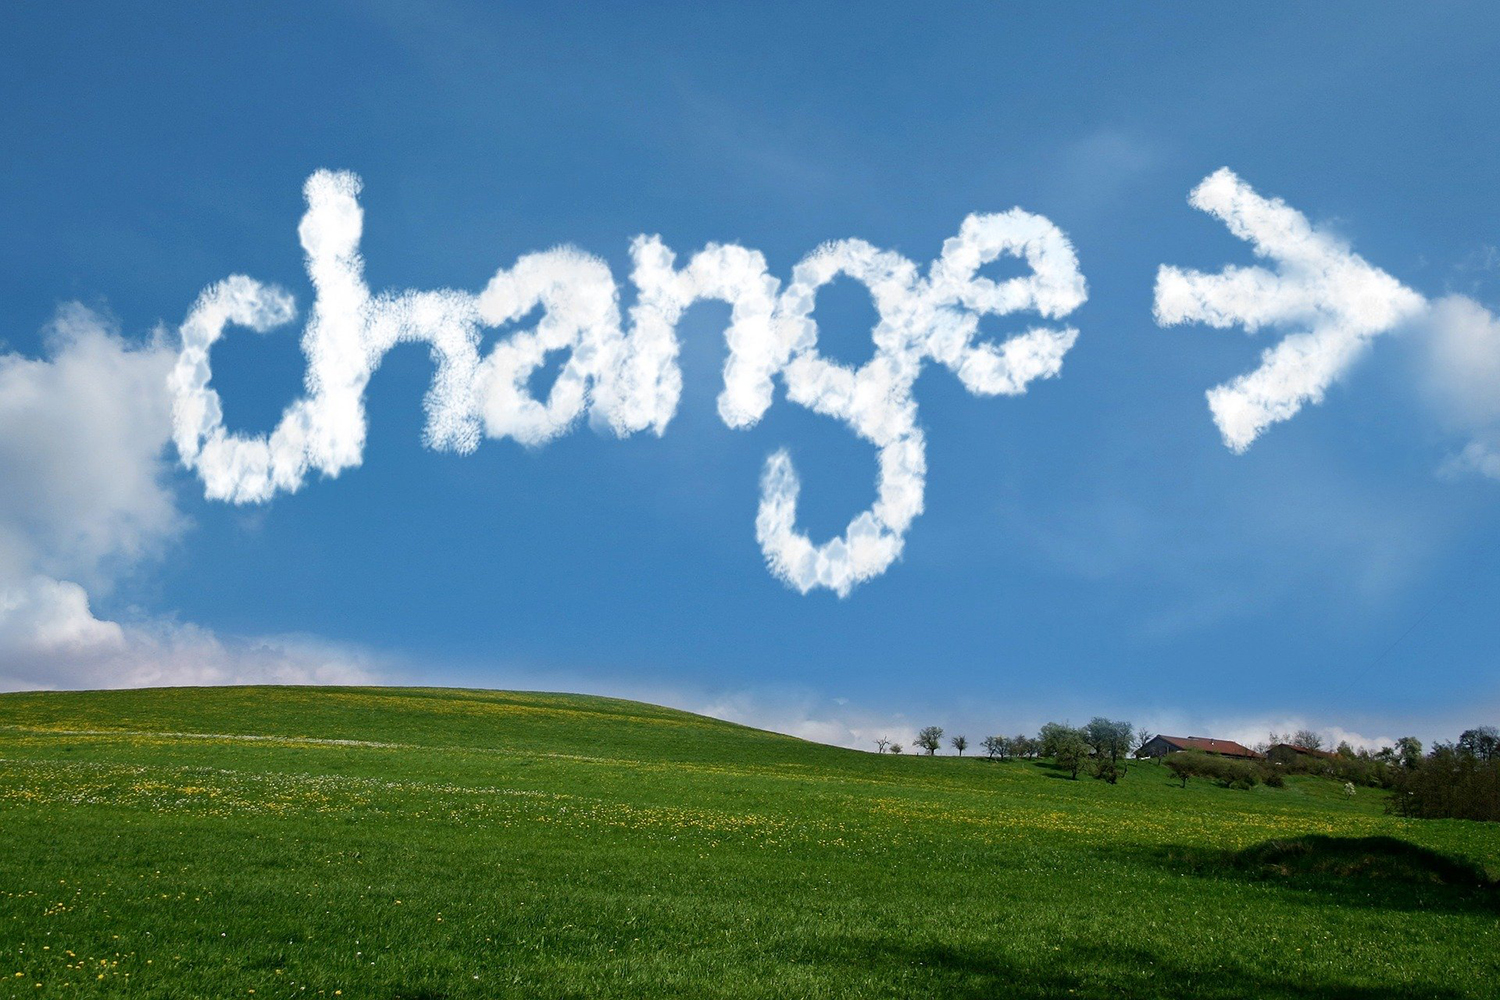 Image of clouds spelling out Change